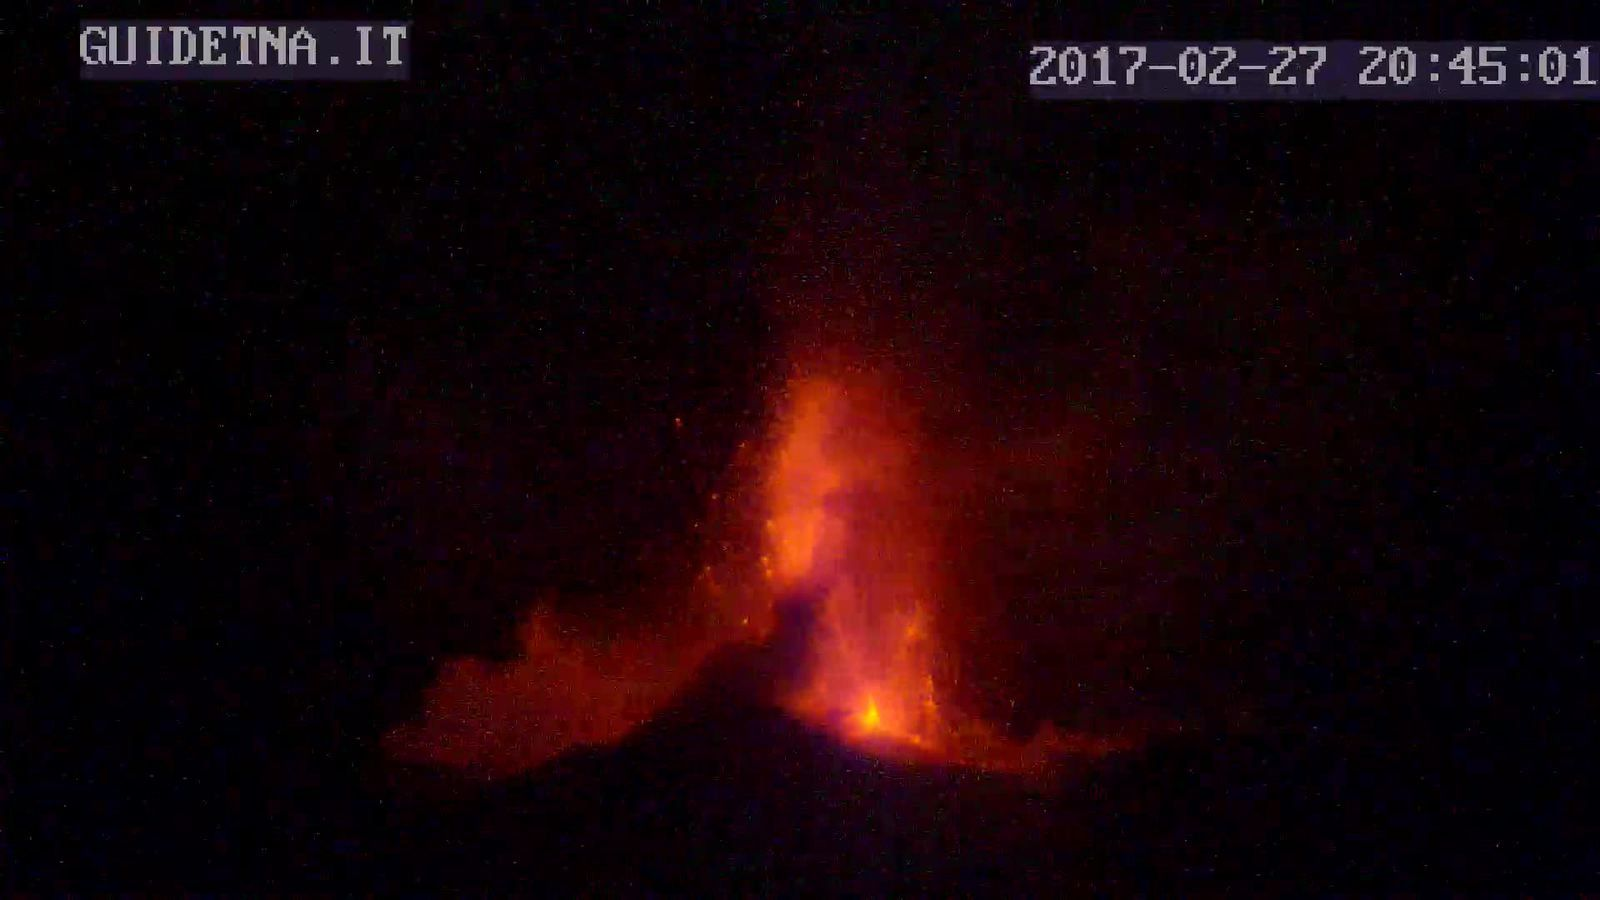 Etna - 27.02.2017 / 20h45 the eruption seen from Linguaglossa - GuidEtna webcam